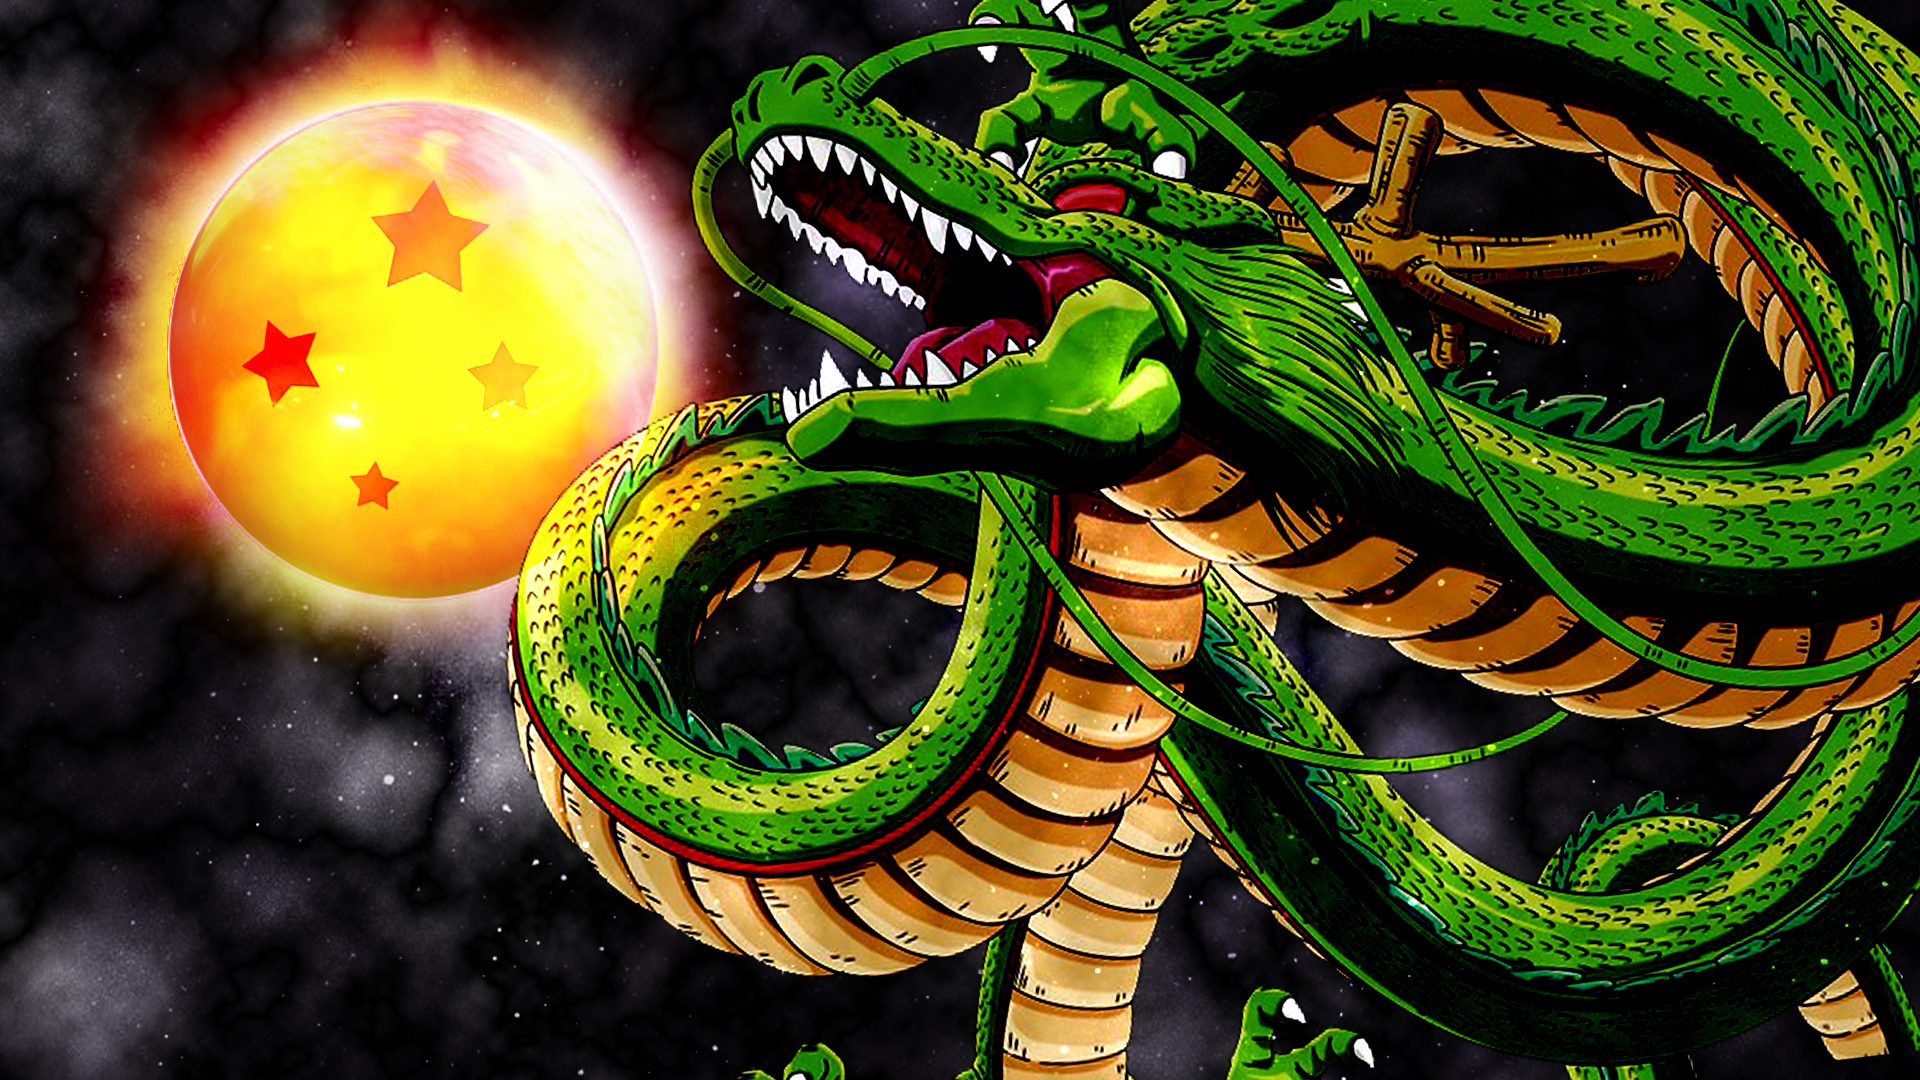 the 15 most powerful dragons in fiction